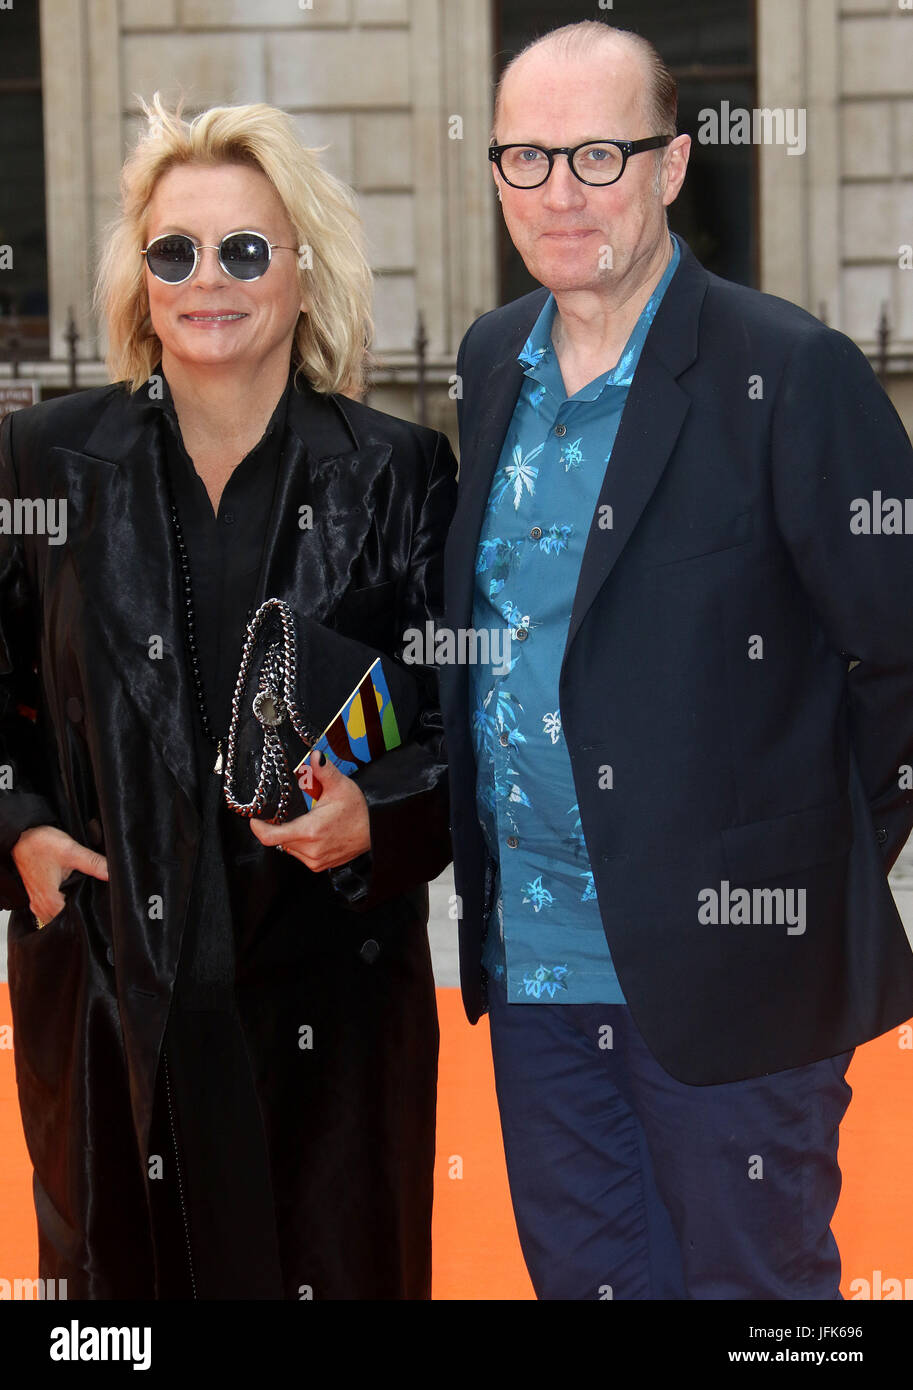 Jun 07, 2017 - Jennifer Saunders and Ade Edmondson attending Royal Academy Summer Exhibition 2017 Preview Party, - Stock Image